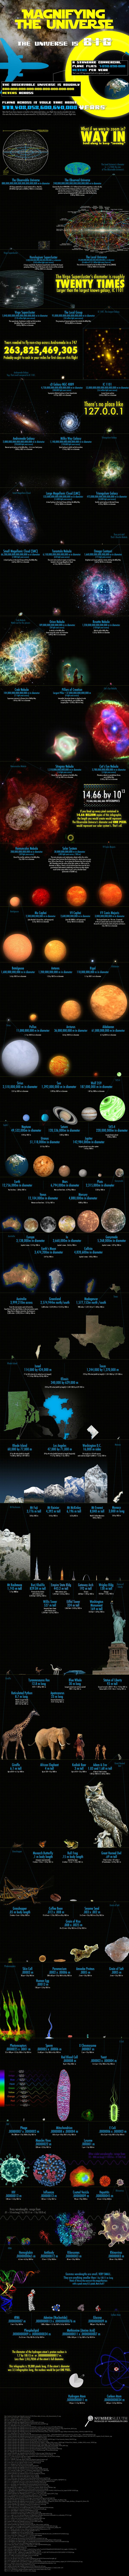 """How big is the universe?   This infographic, designed by Number Sleuth, visualizes the size of the universe and its contents by allowing you to scroll down from the very largest known objects to the smallest and compare their relative sizes. Each row in the graphic represents a """"level"""" and the blue funnel represents you zooming from one level to the next, going from larger to smaller."""